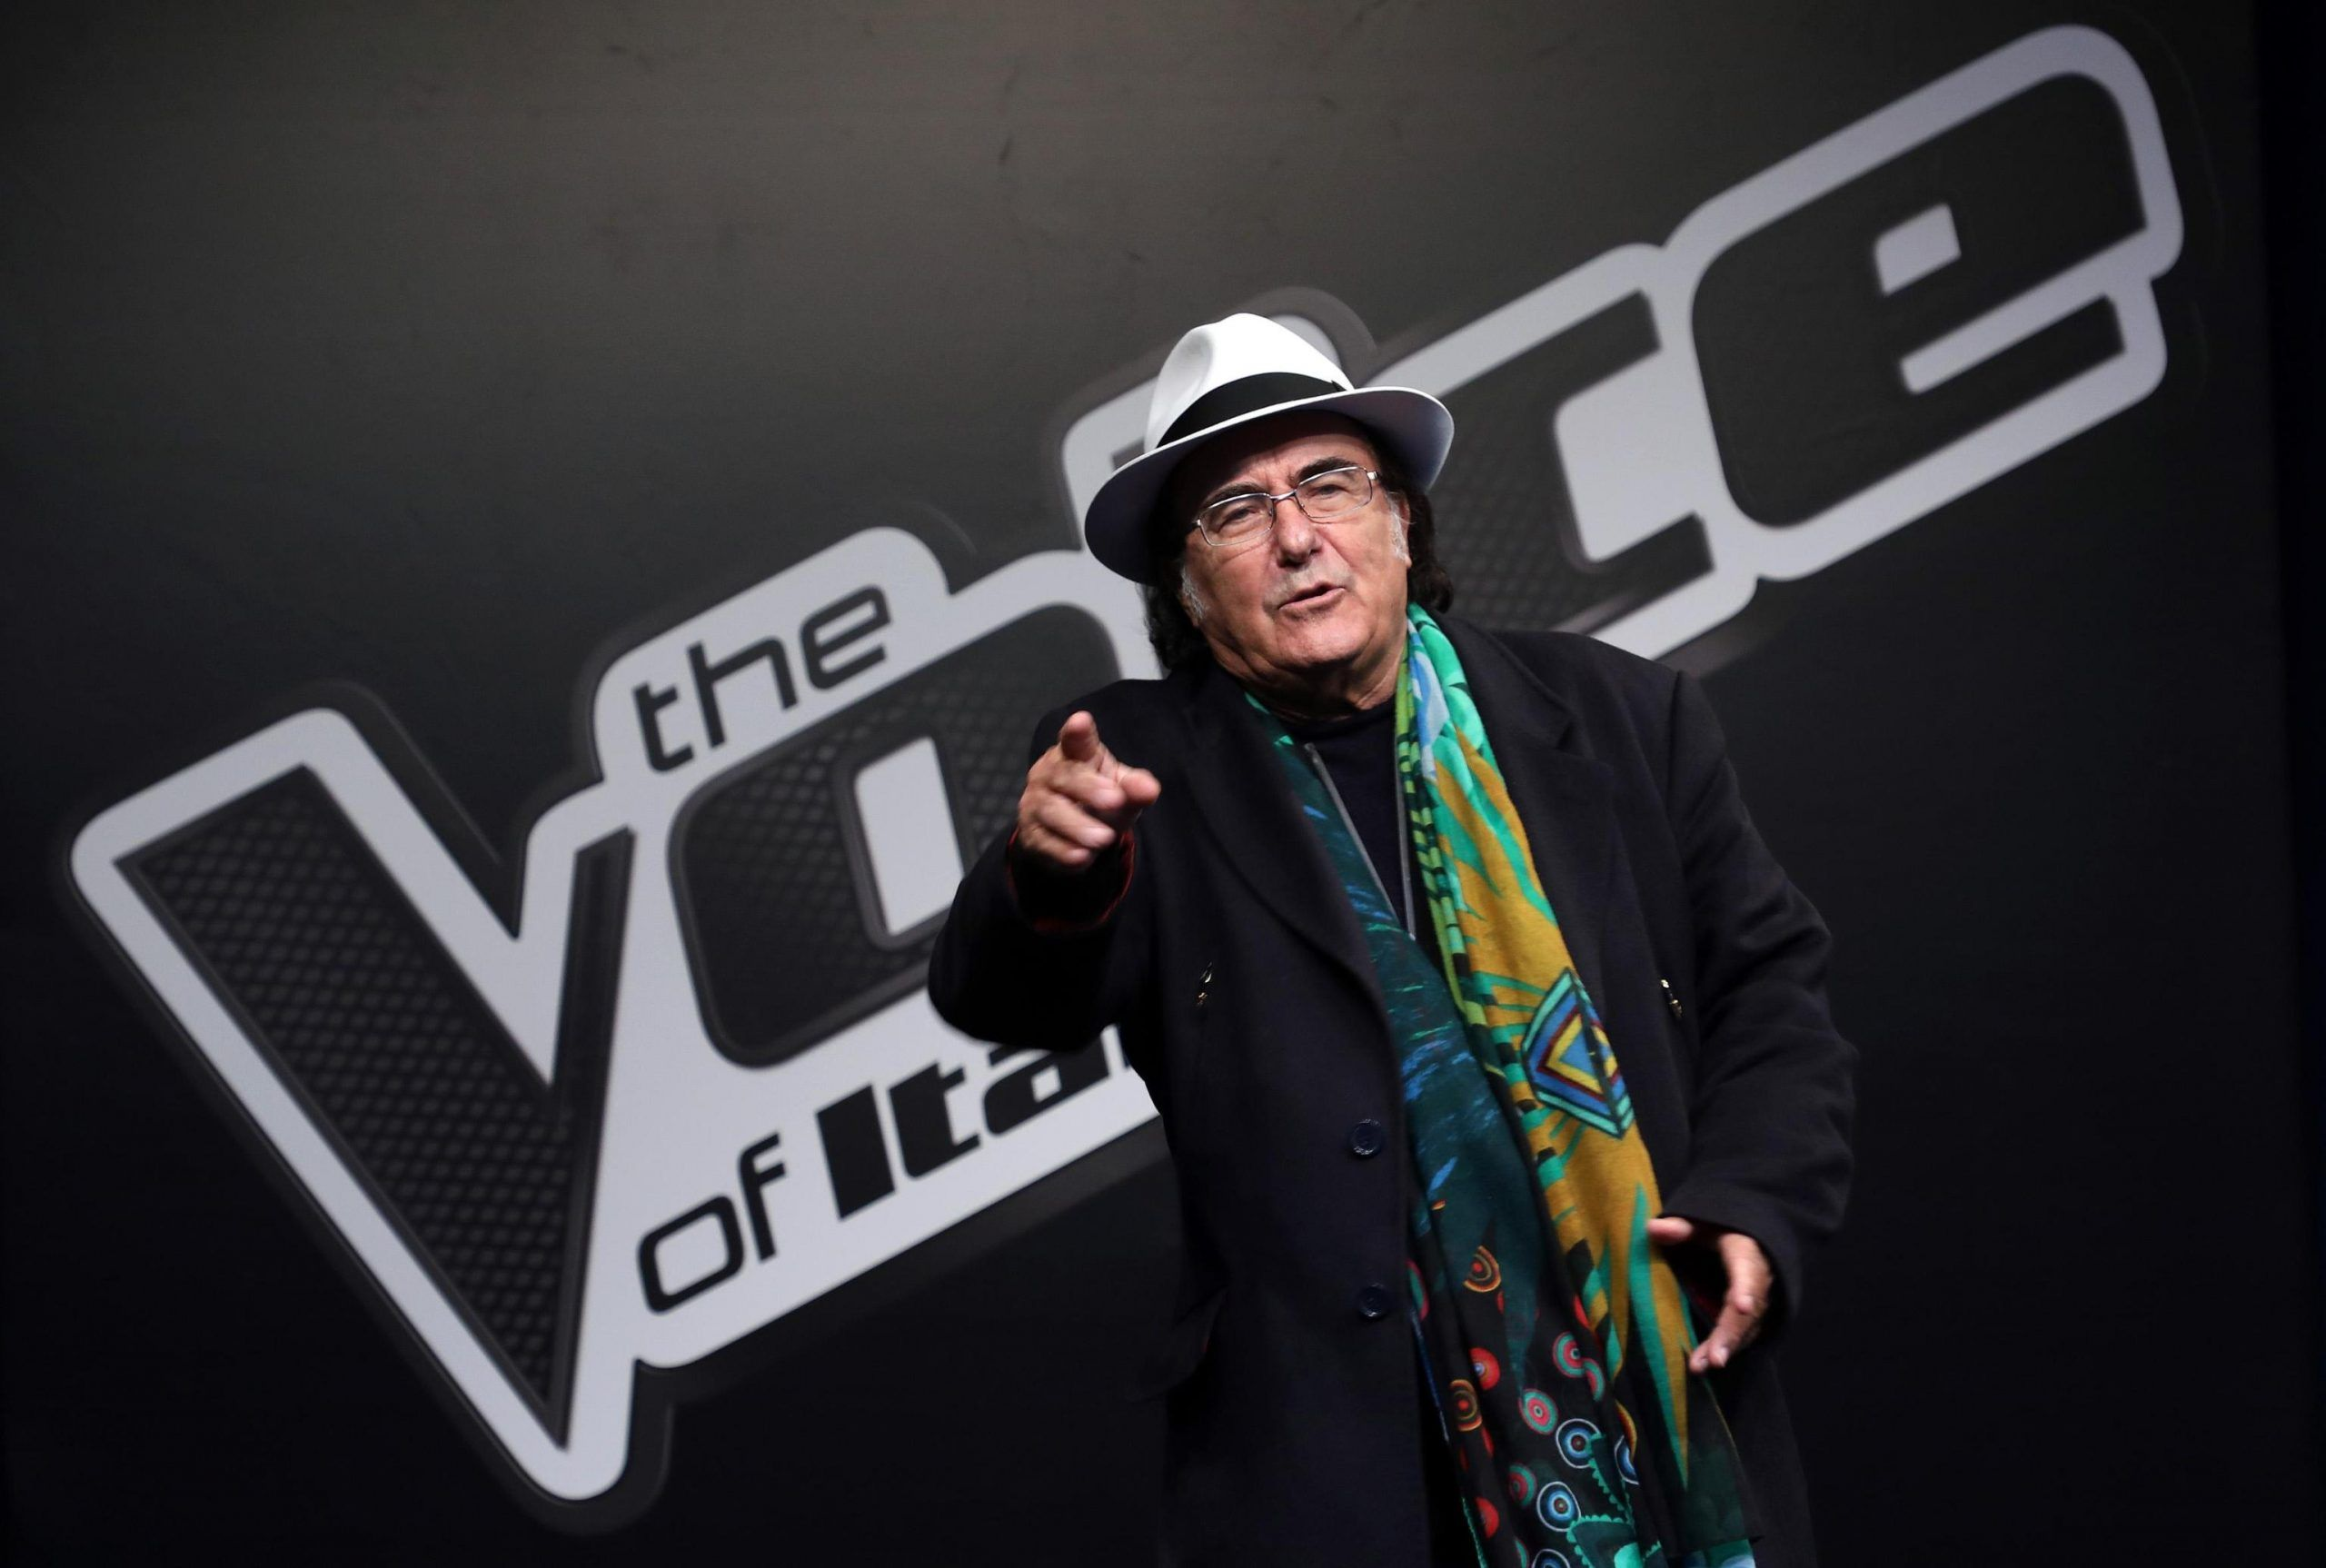 Tv: The Voice, nuovo inizio per talent musicale Rai